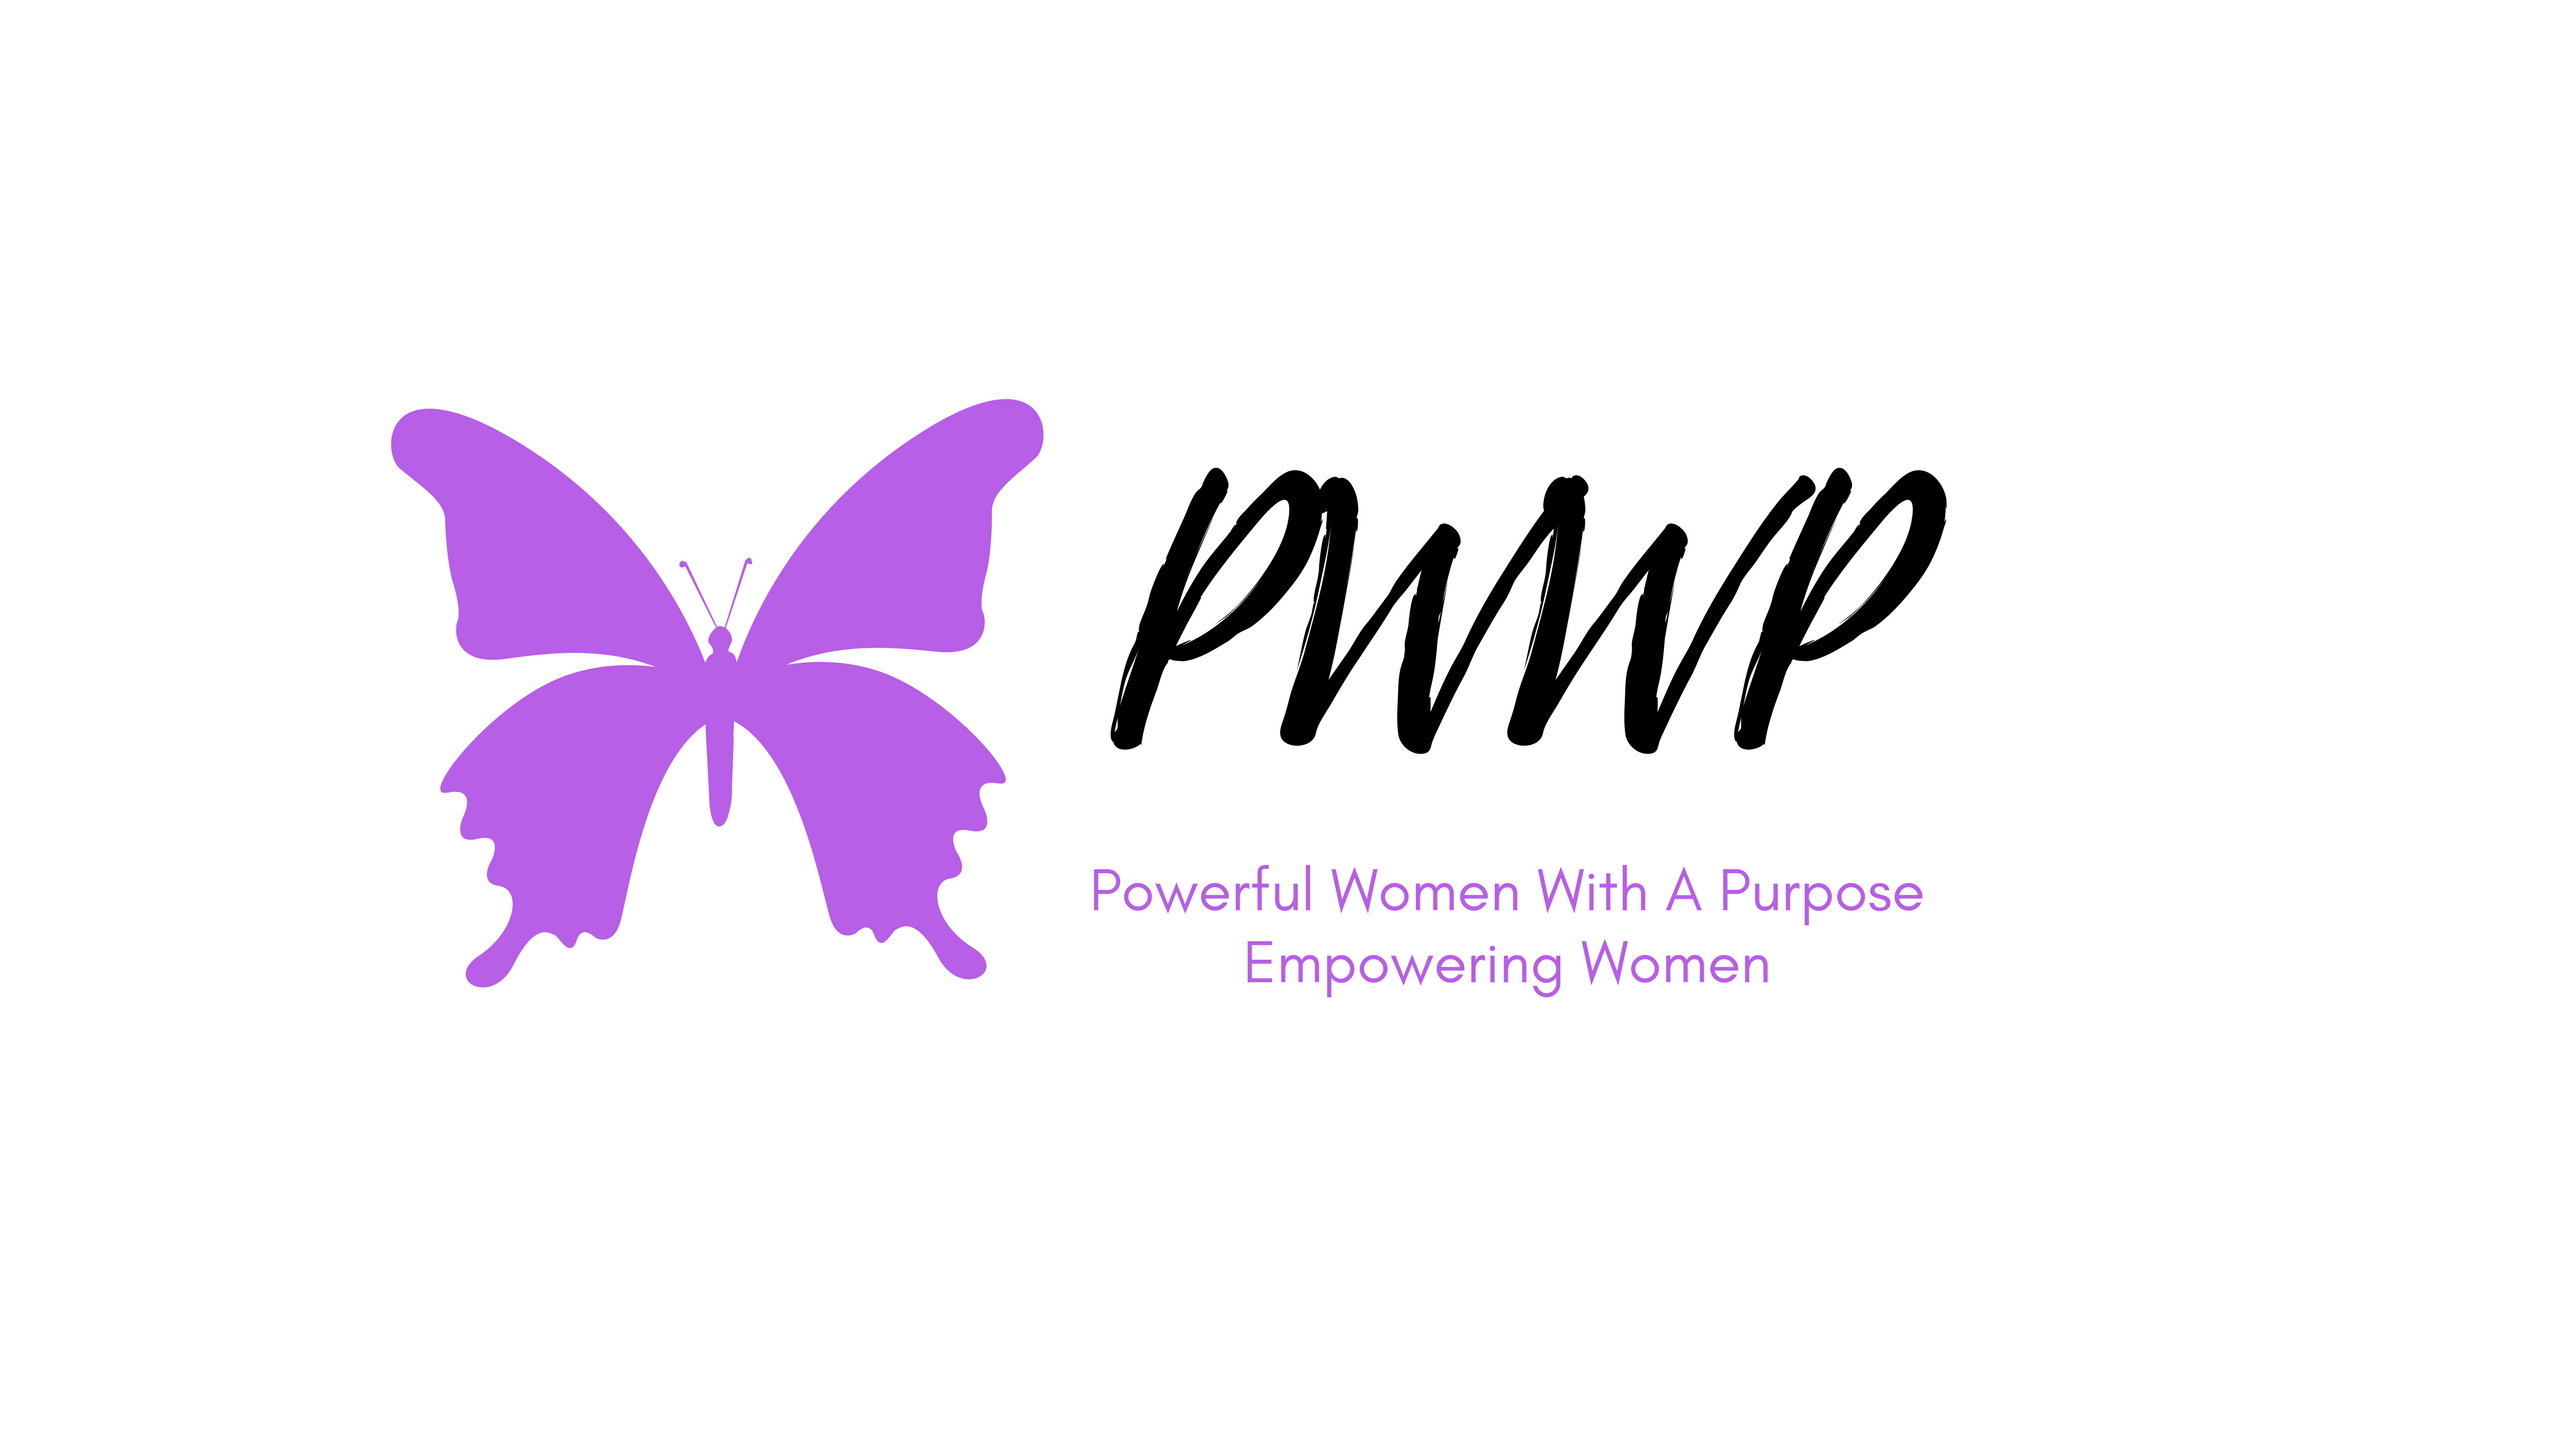 Powerful Women With A Purpose logo